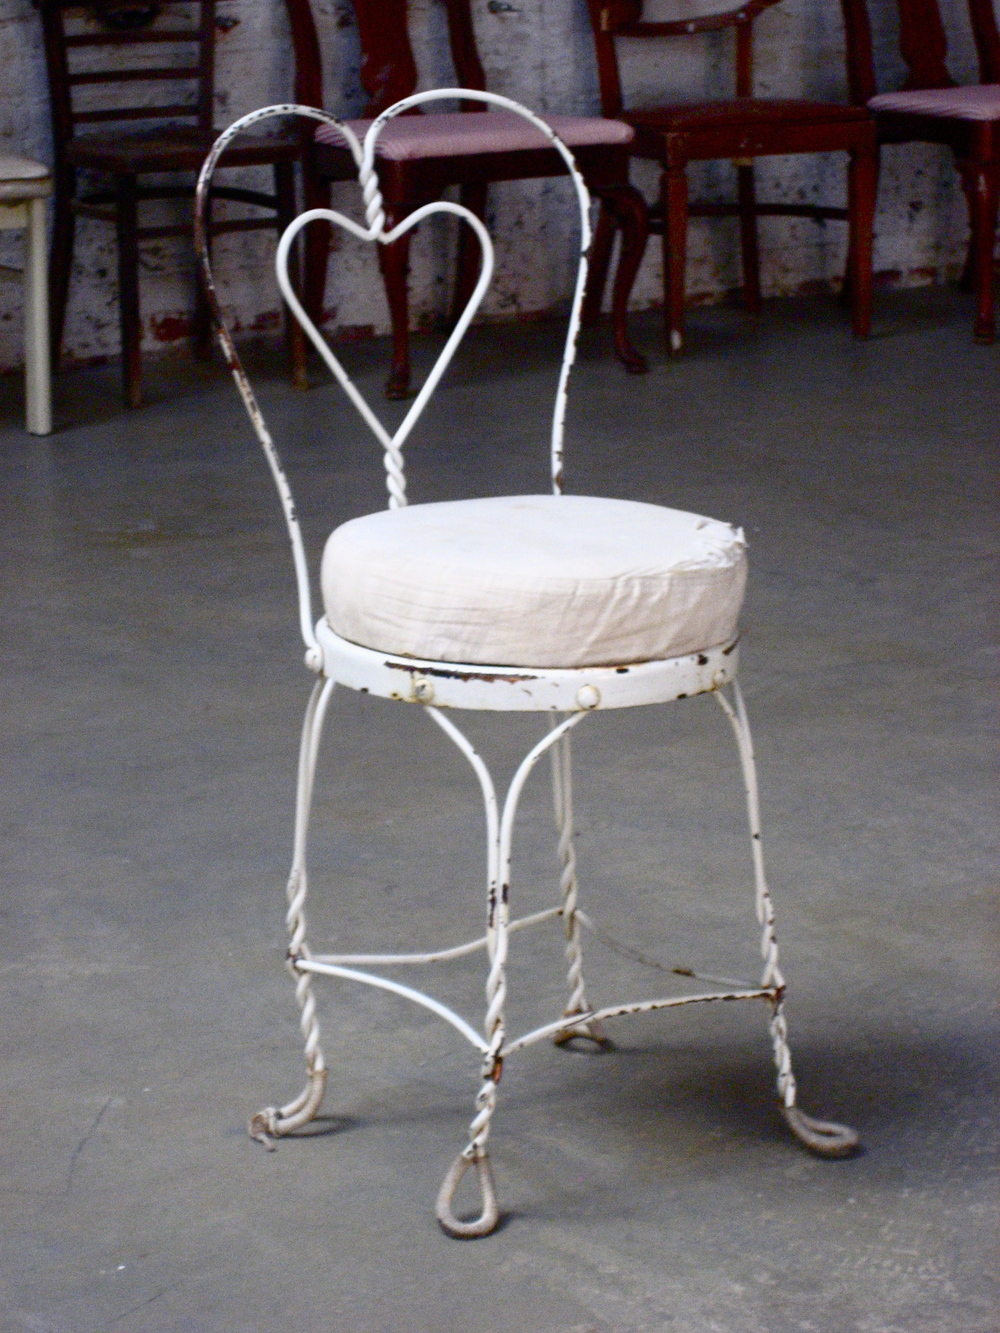 White Iron Heart Parlor Chair $30